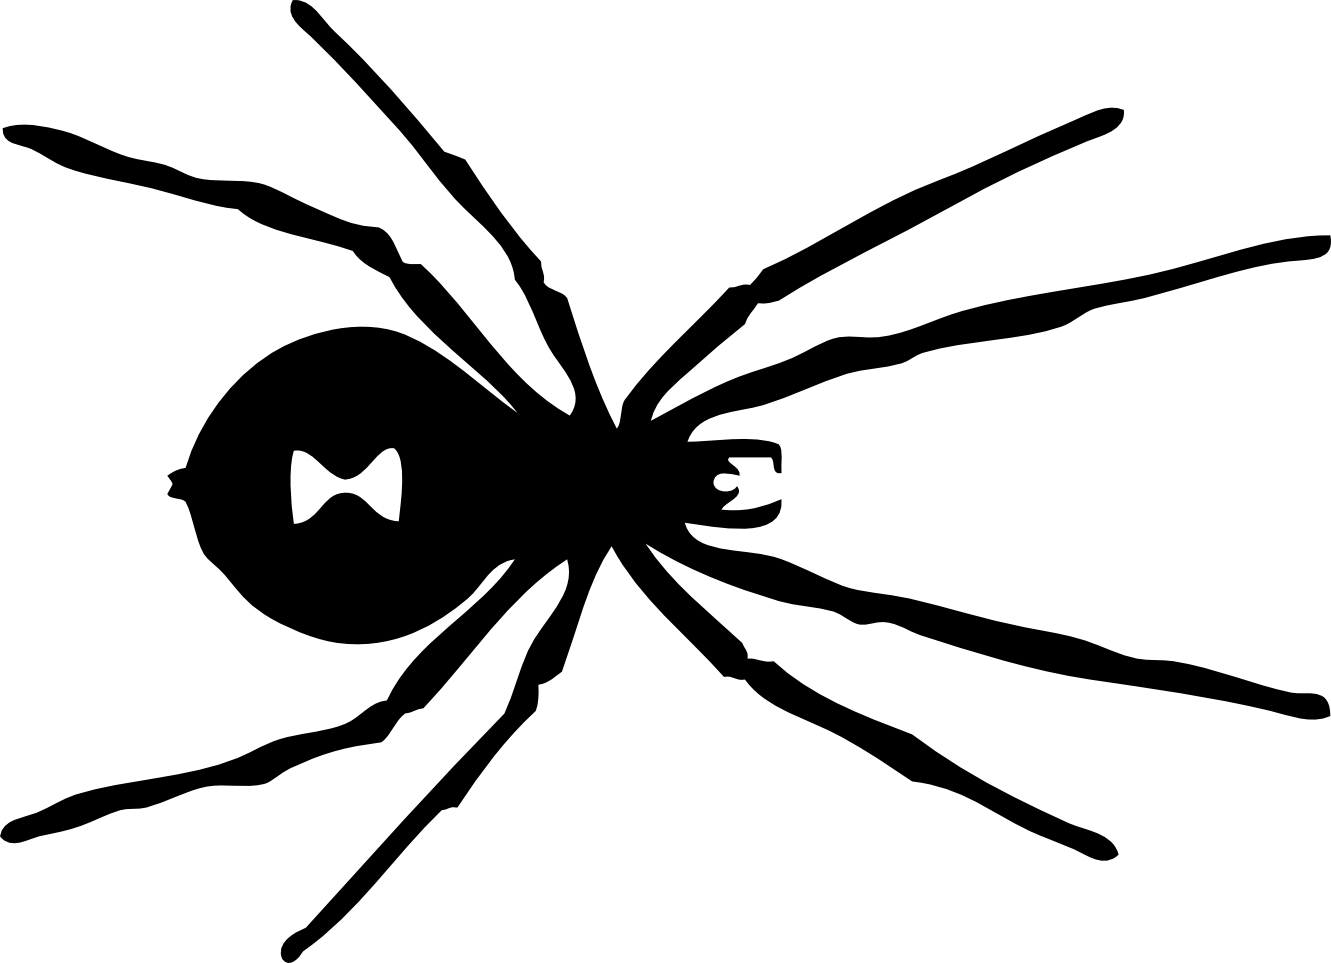 Spider Clipart Clipart Panda